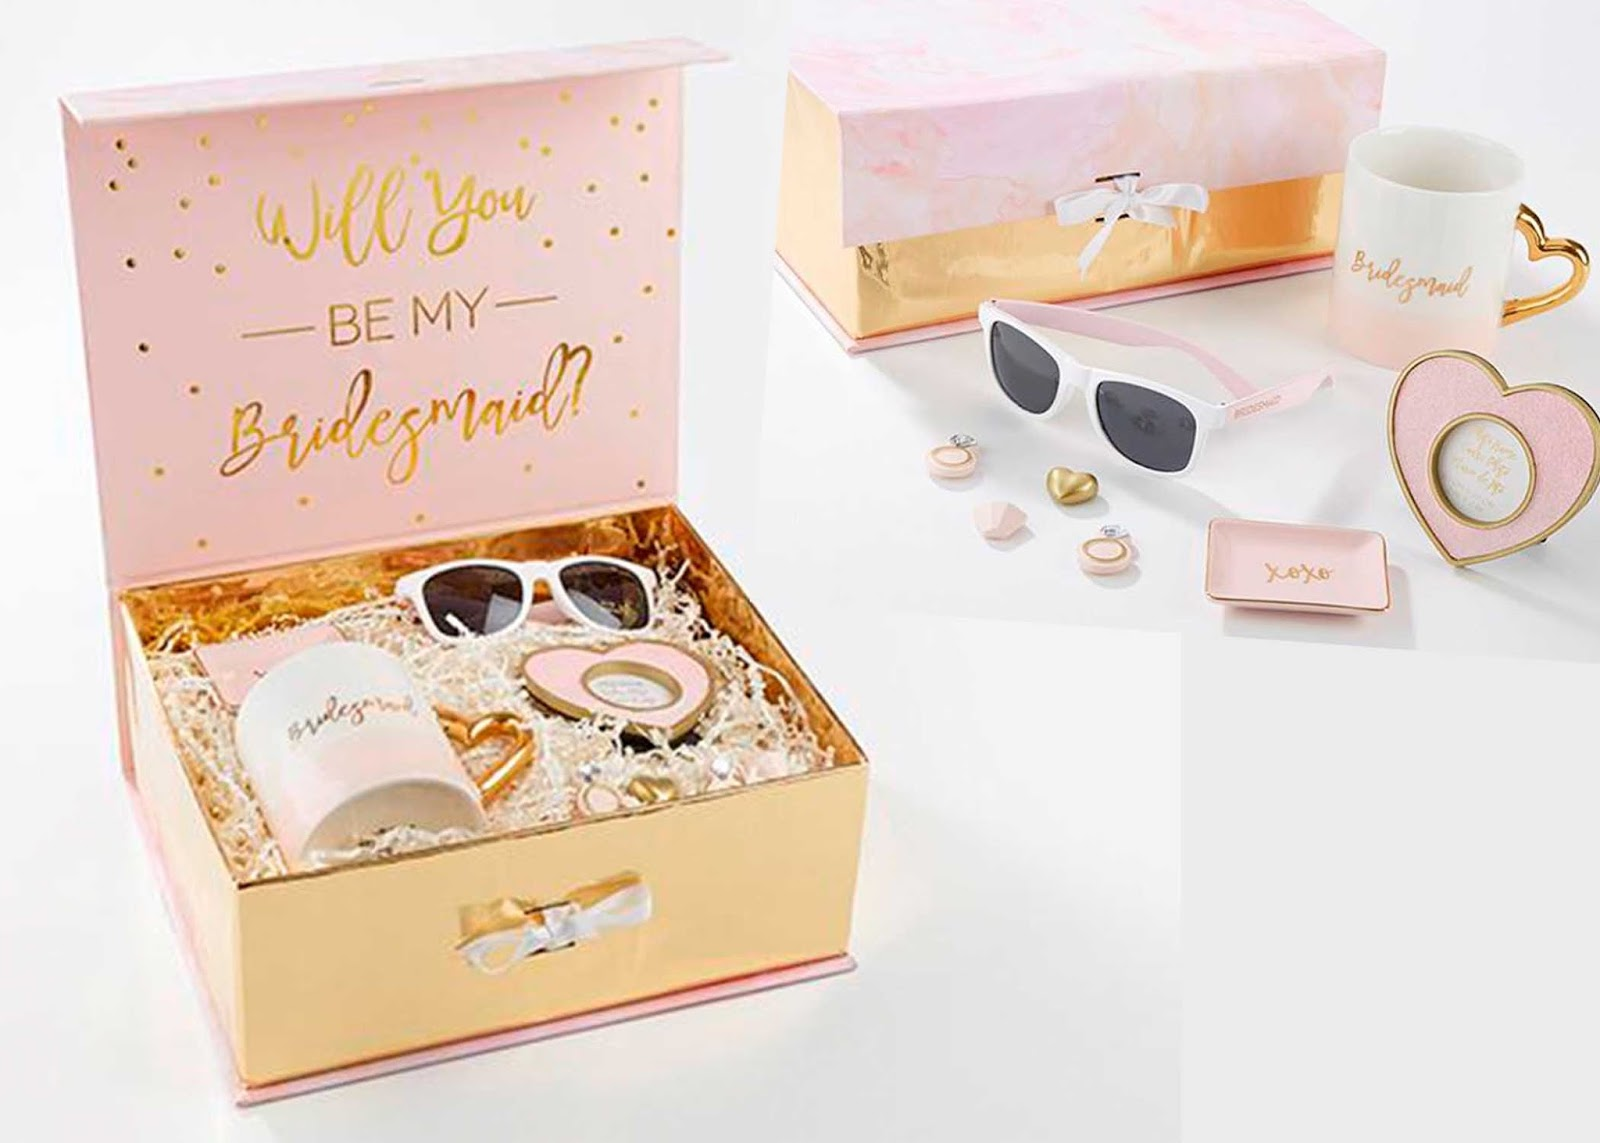 Creative Ways To Pop The Question To Your Bridesmaids